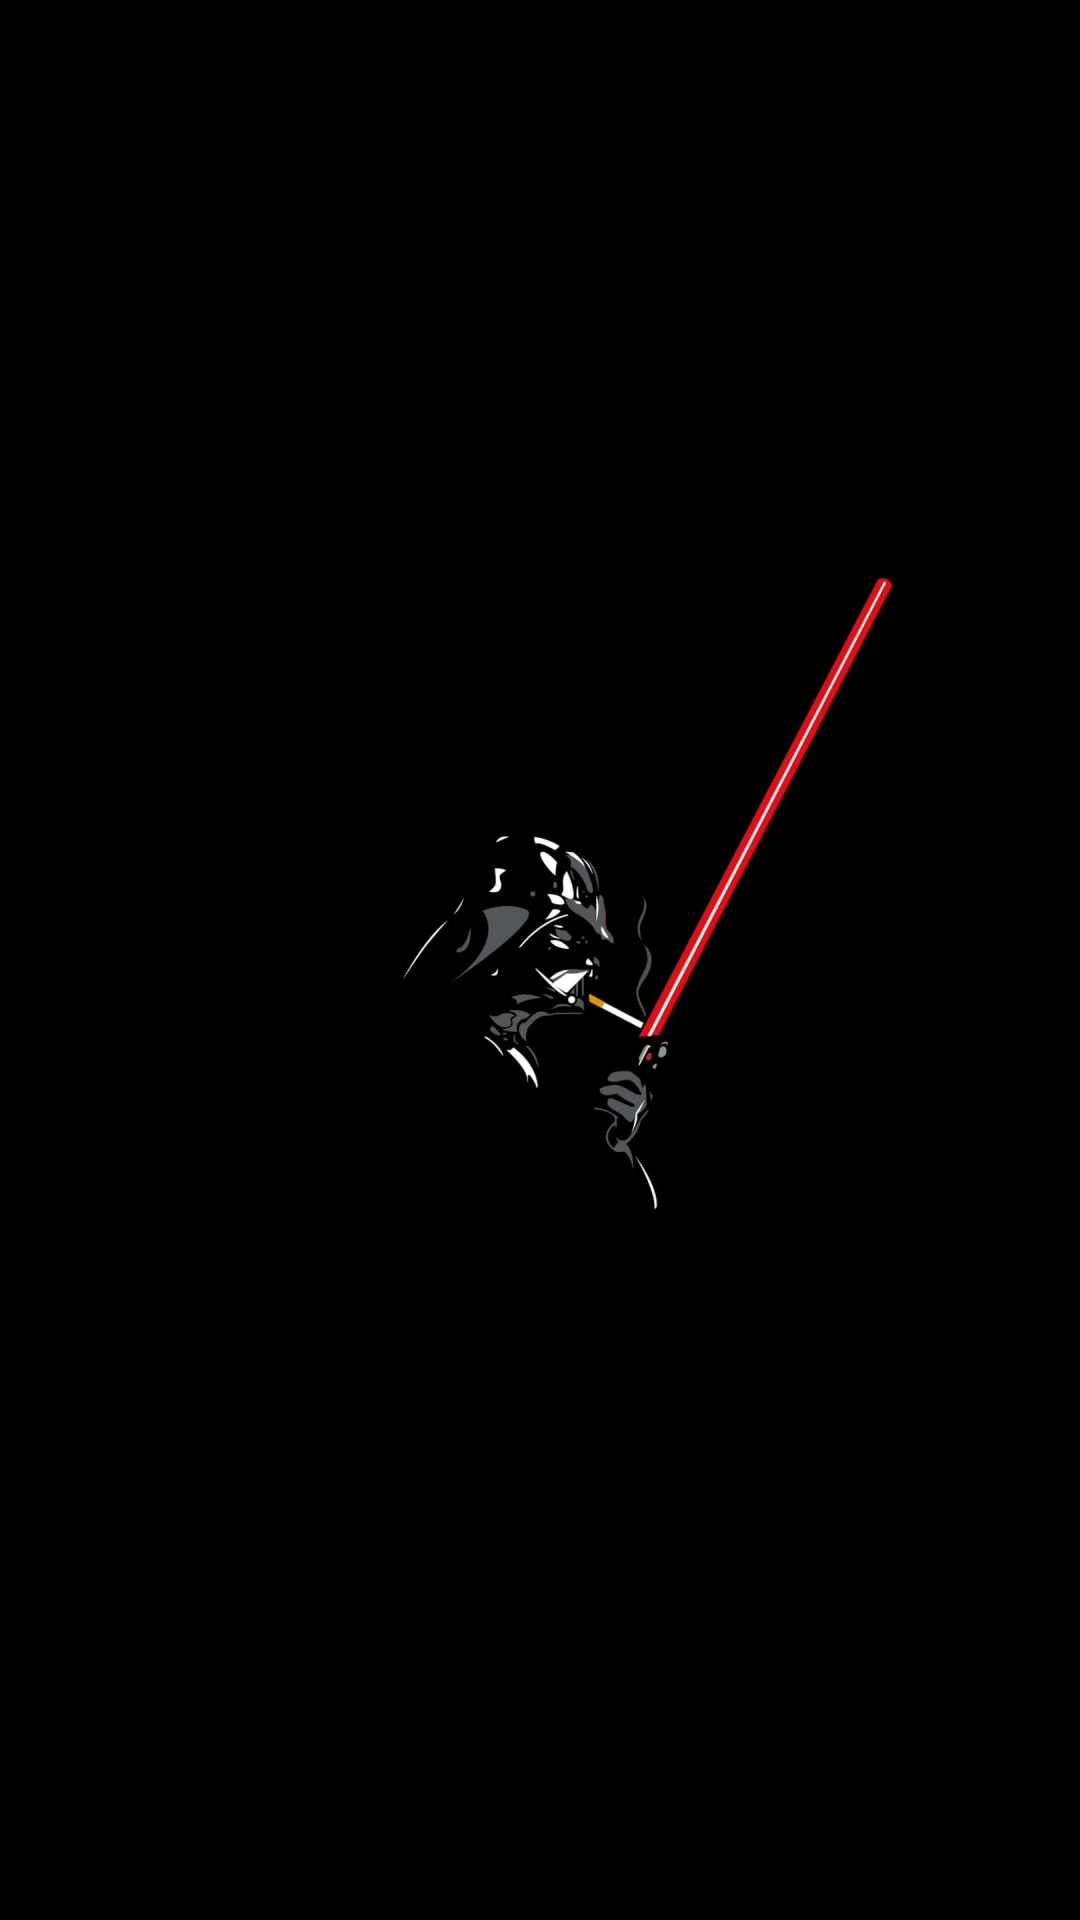 Darth Vader Lighting a Cigarette Wallpaper for SONY Xperia Z3